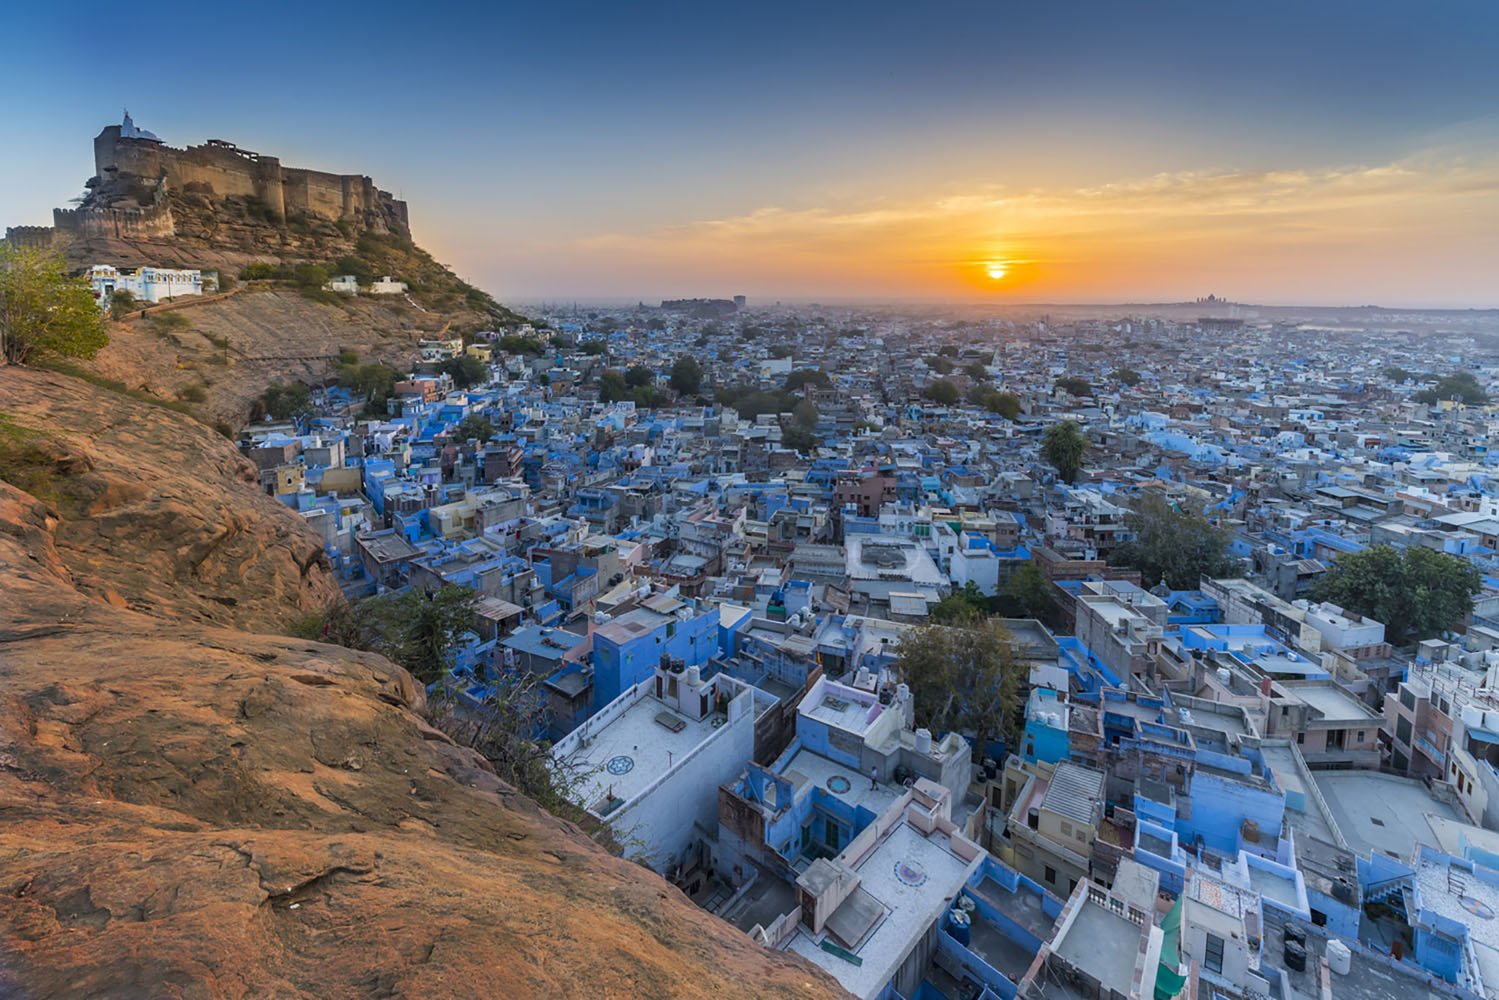 Mehrangarh Fort in The Blue City, Jodhpur. Rajasthan, India